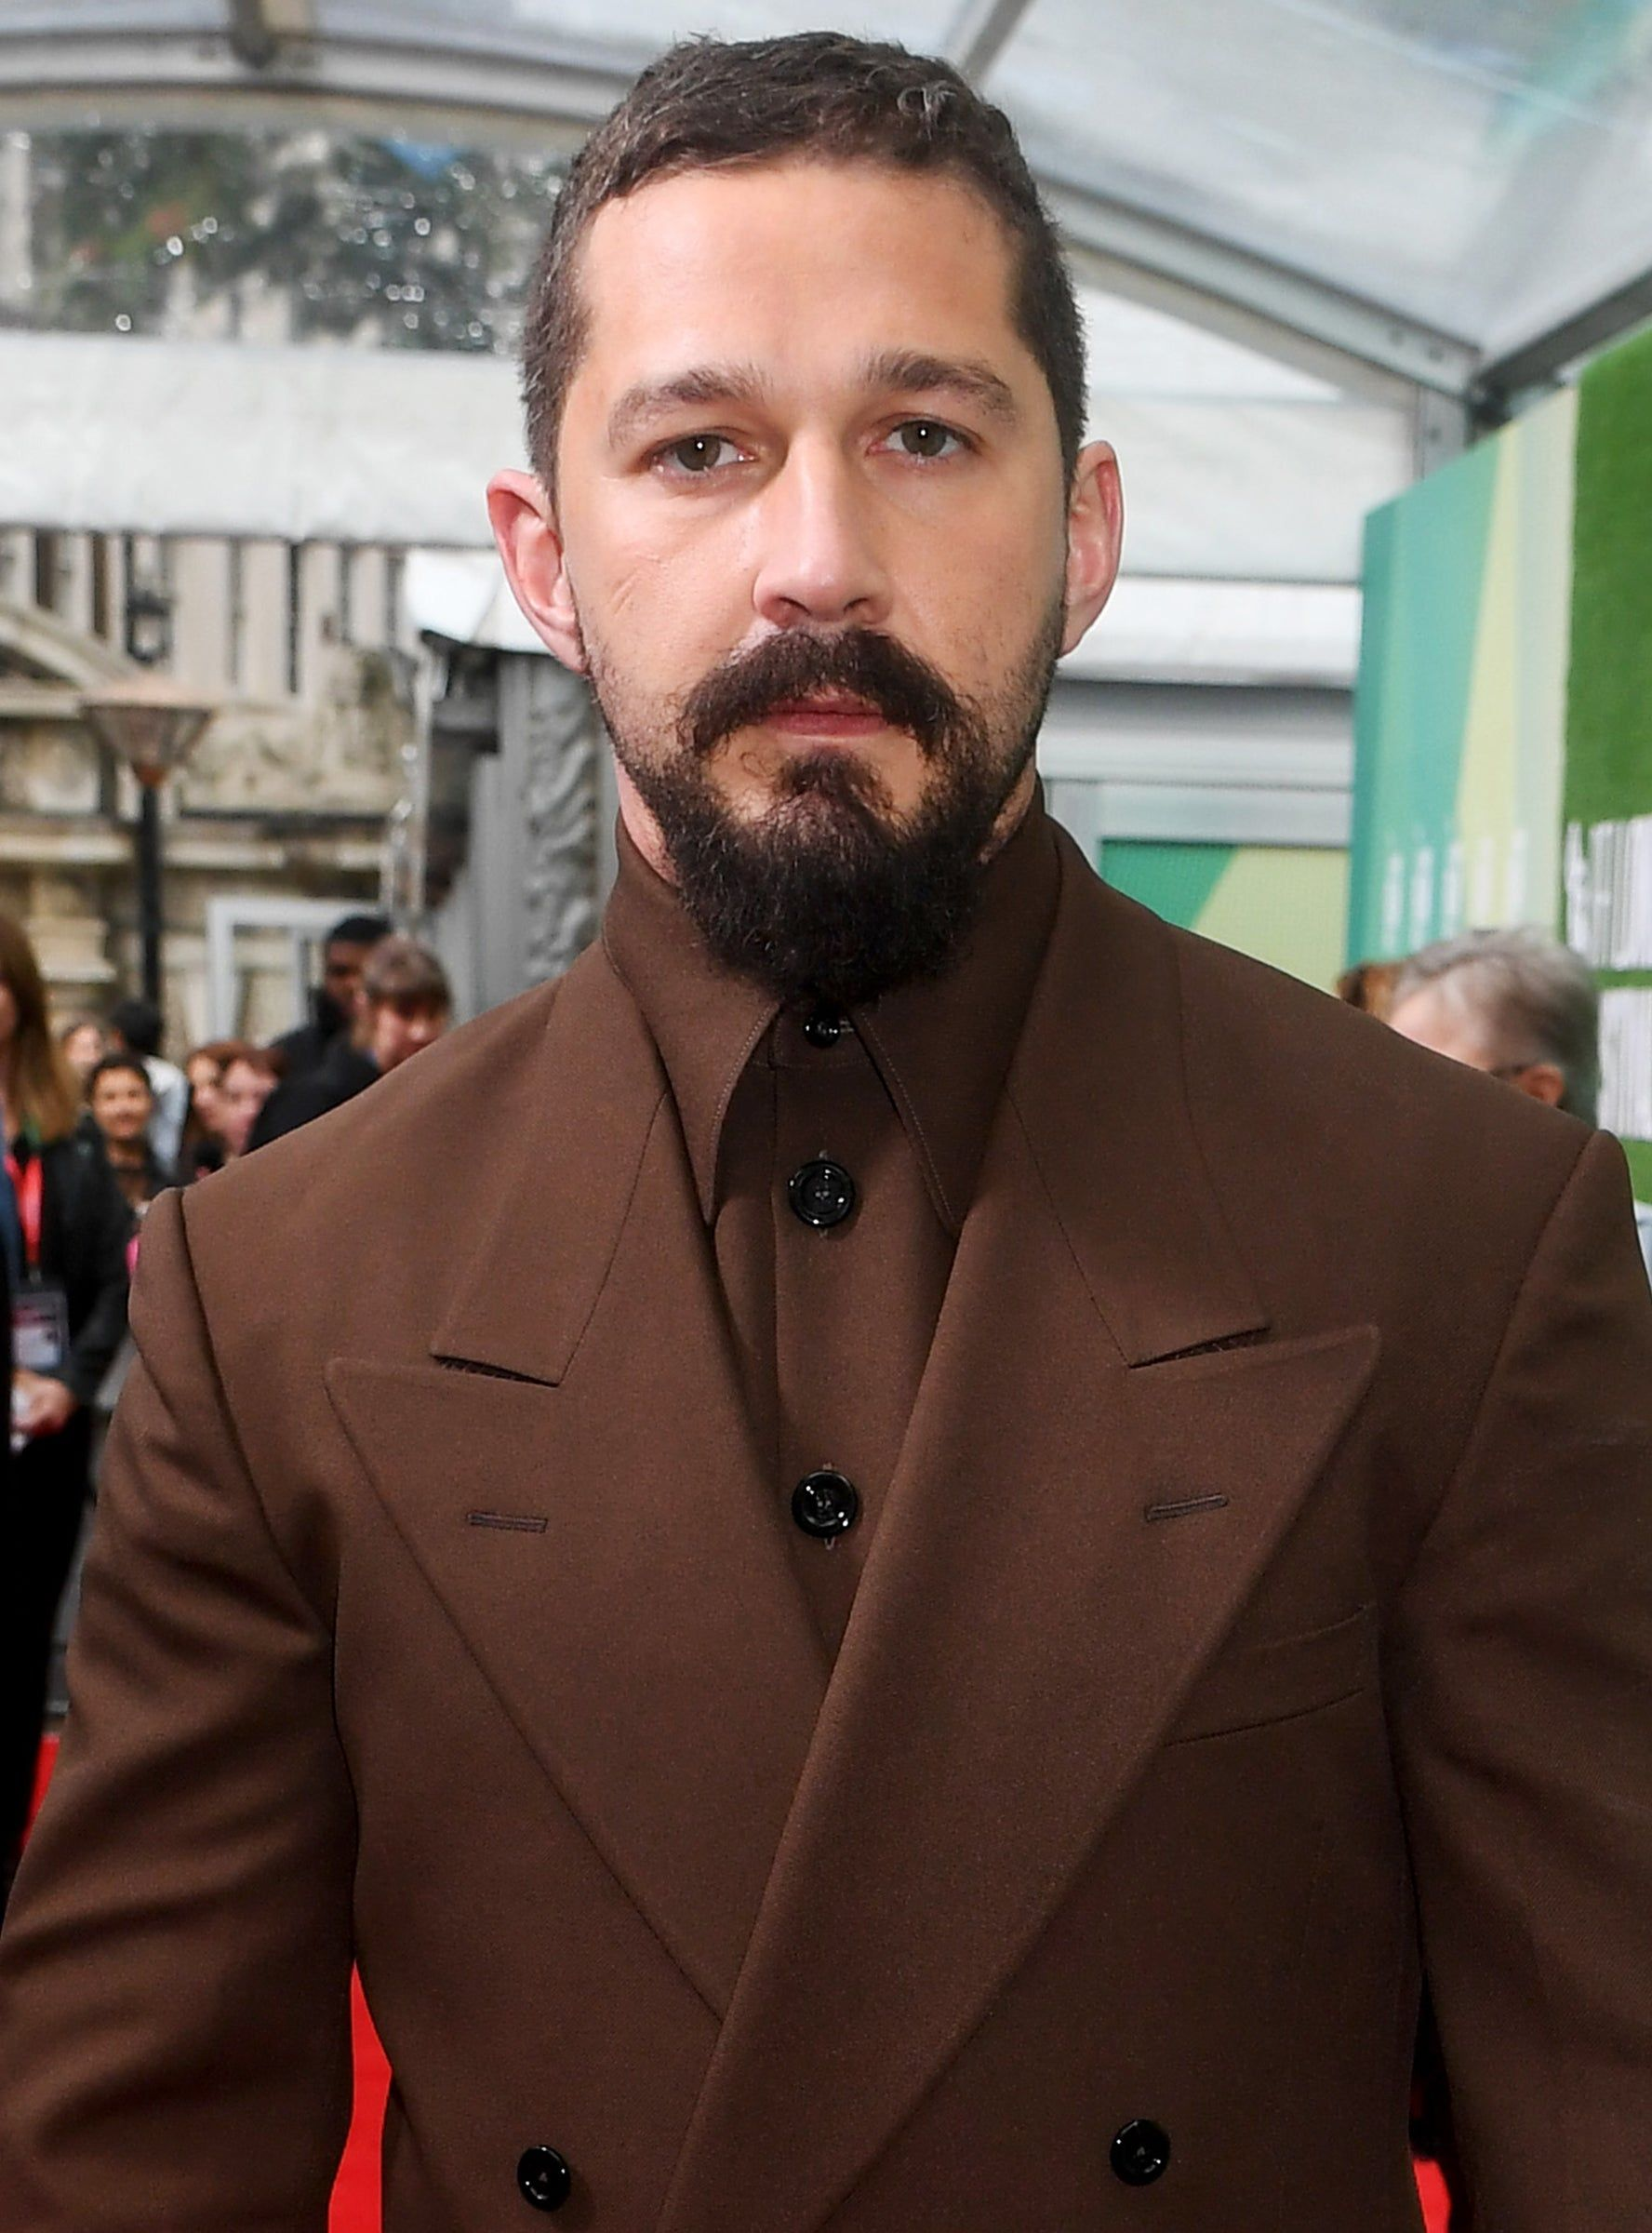 What Happened When Shia LaBeouf Went To Rehab (With images